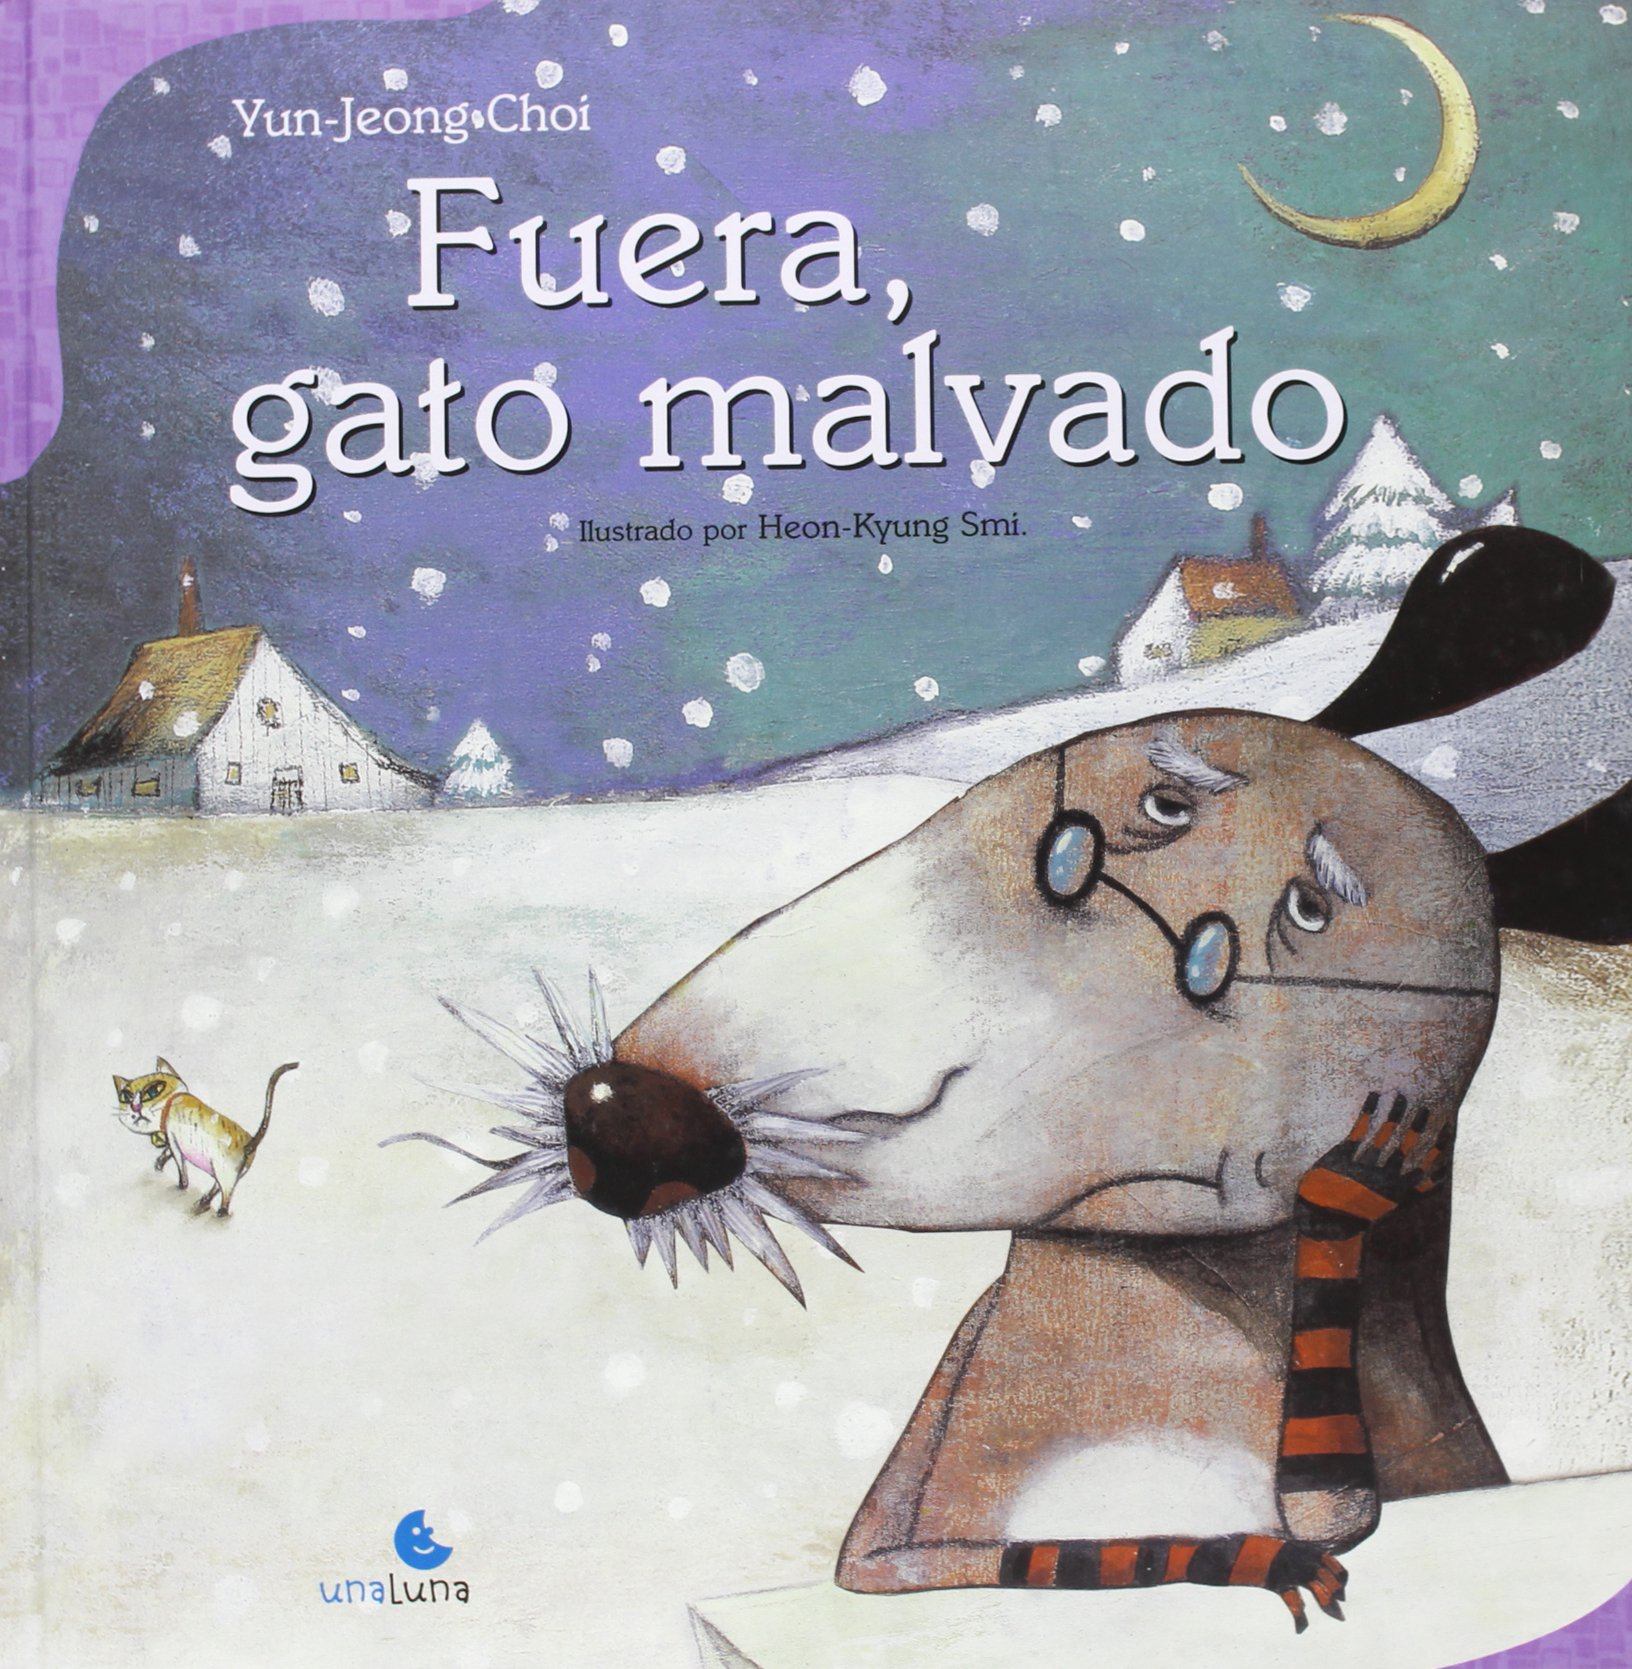 Fuera, gato malvado (Spanish Edition) (Spanish) Hardcover – February 1, 2010